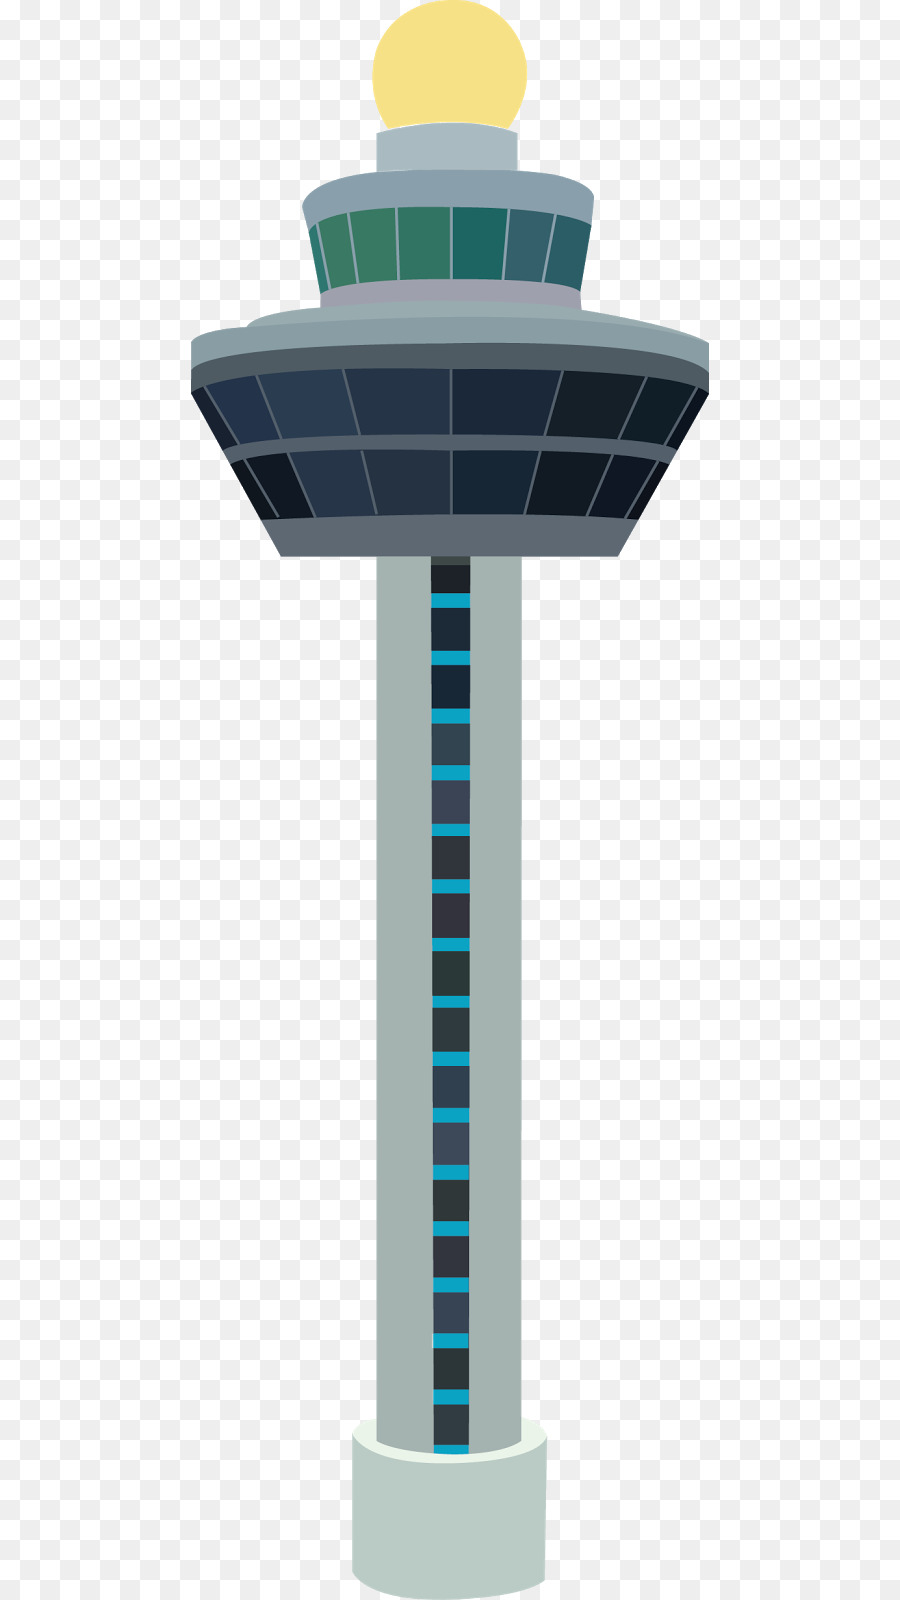 Airport tower clipart picture royalty free stock clipart Salzburg Airport Control tower Air traffic control clipart ... picture royalty free stock